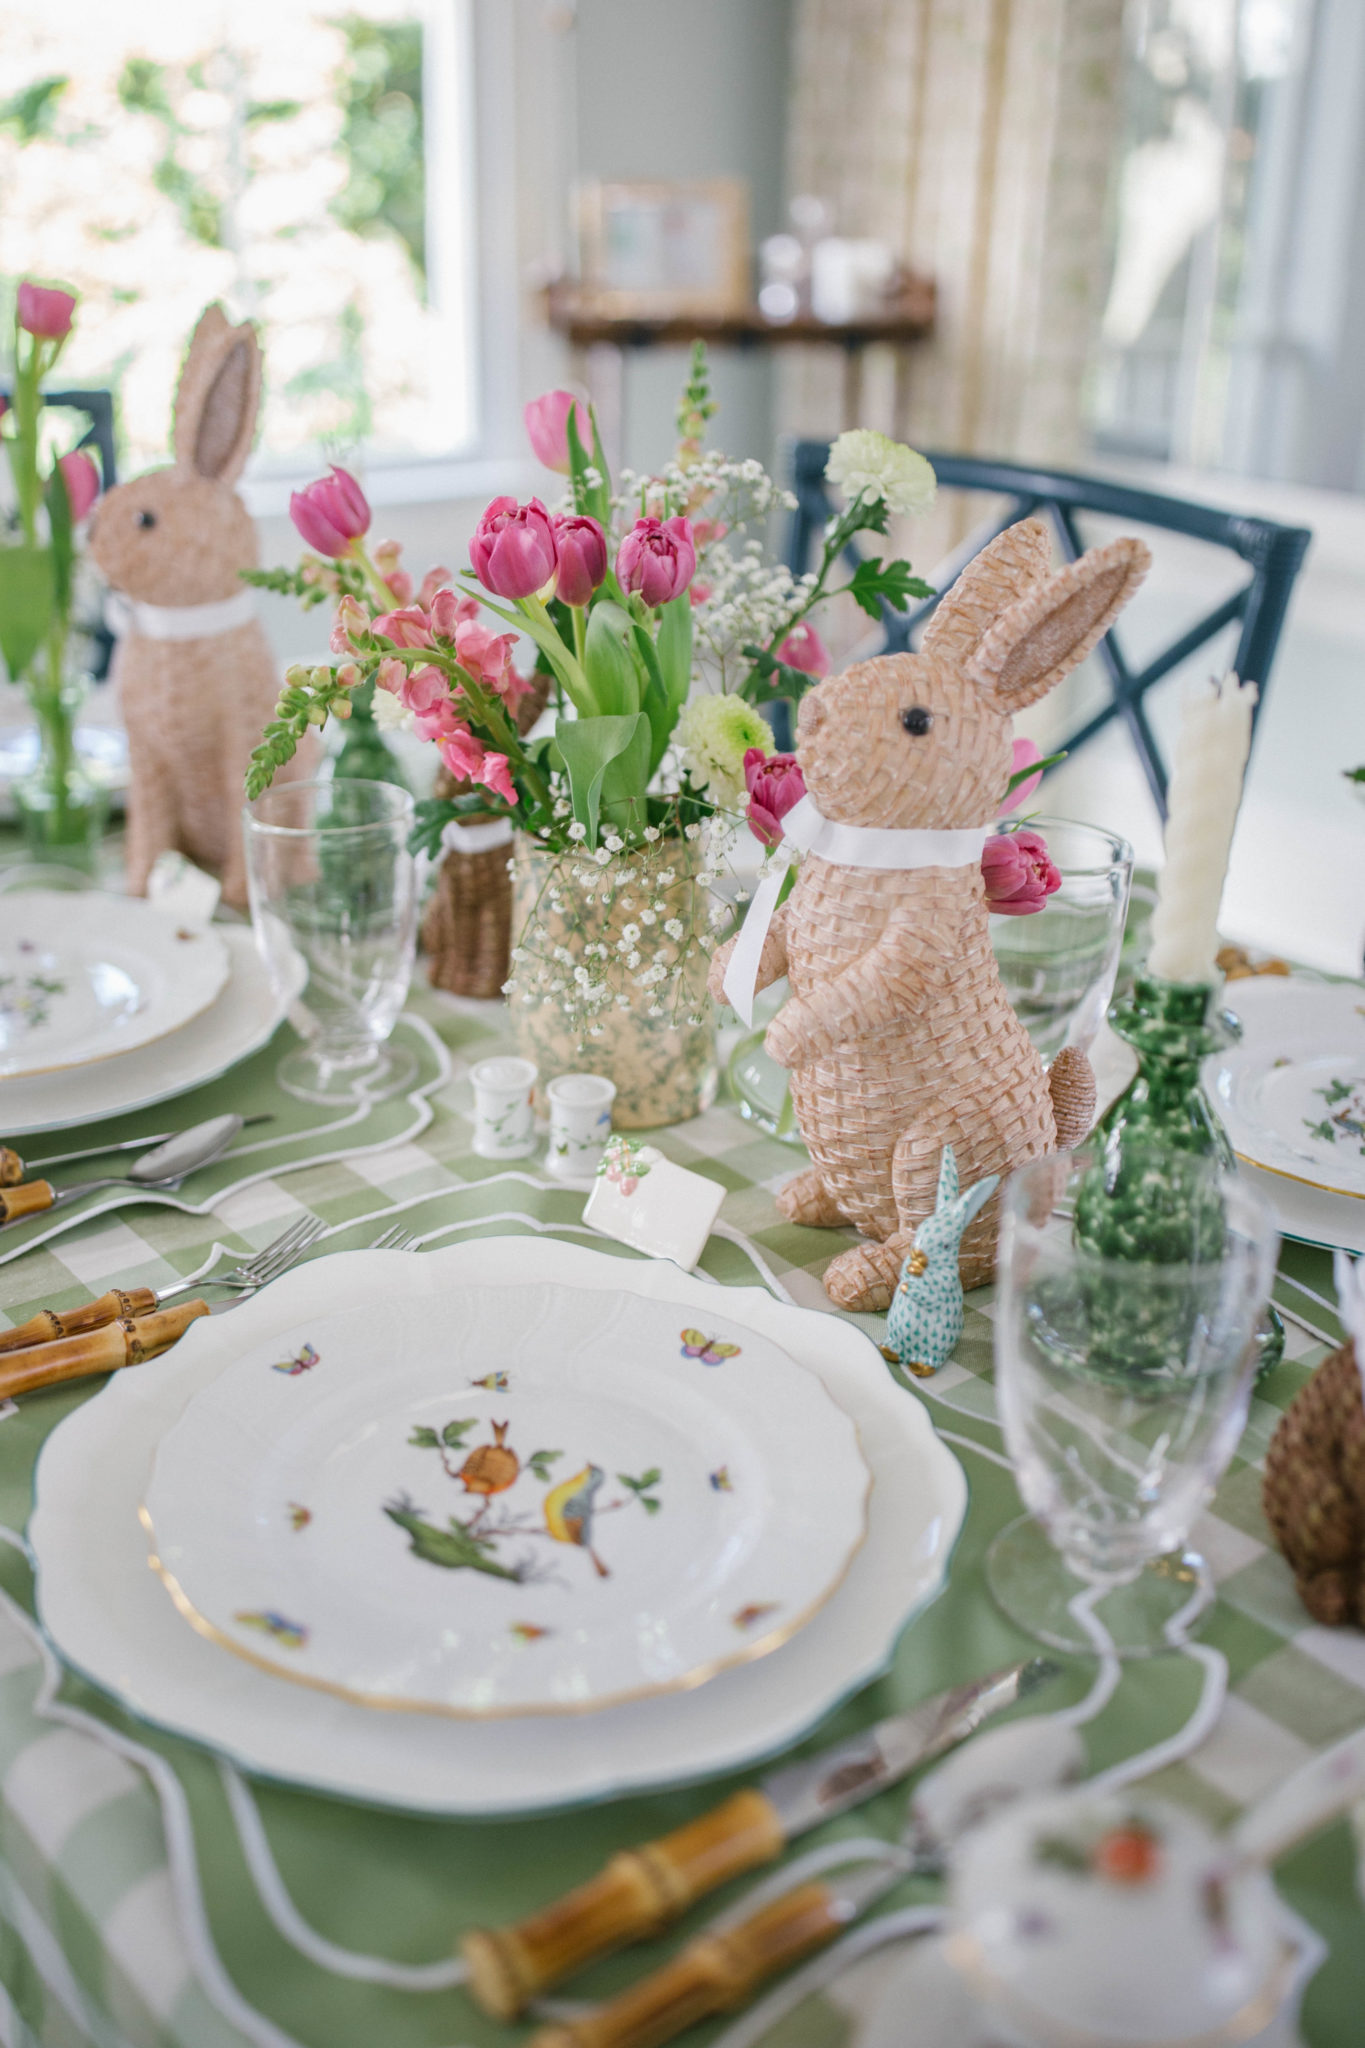 How to set a beautiful table for Easter | Rhyme & Reason